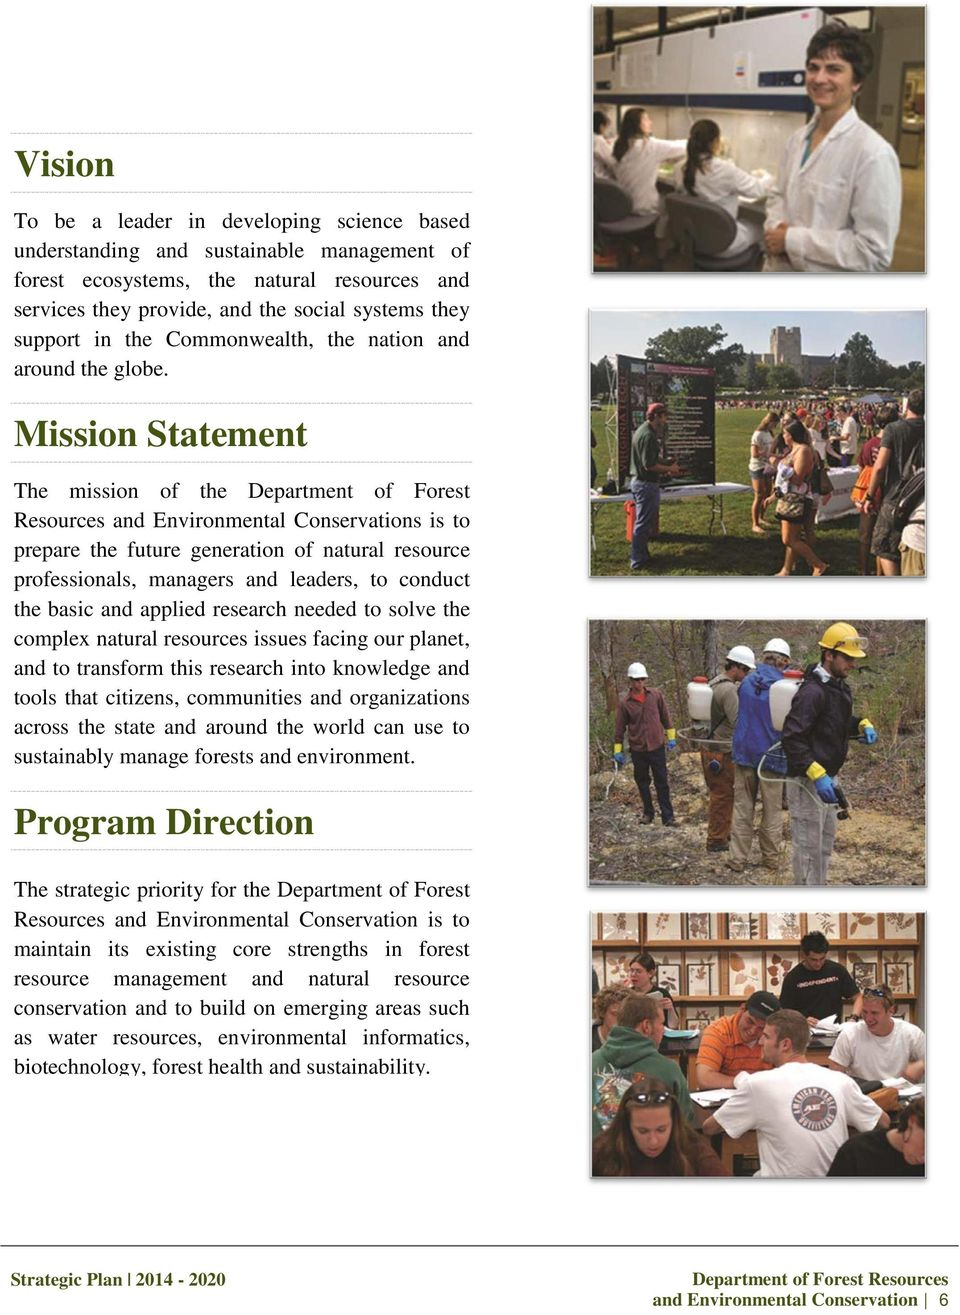 Mission Statement The mission of the Department of Forest Resources and Environmental Conservations is to prepare the future generation of natural resource professionals, managers and leaders, to